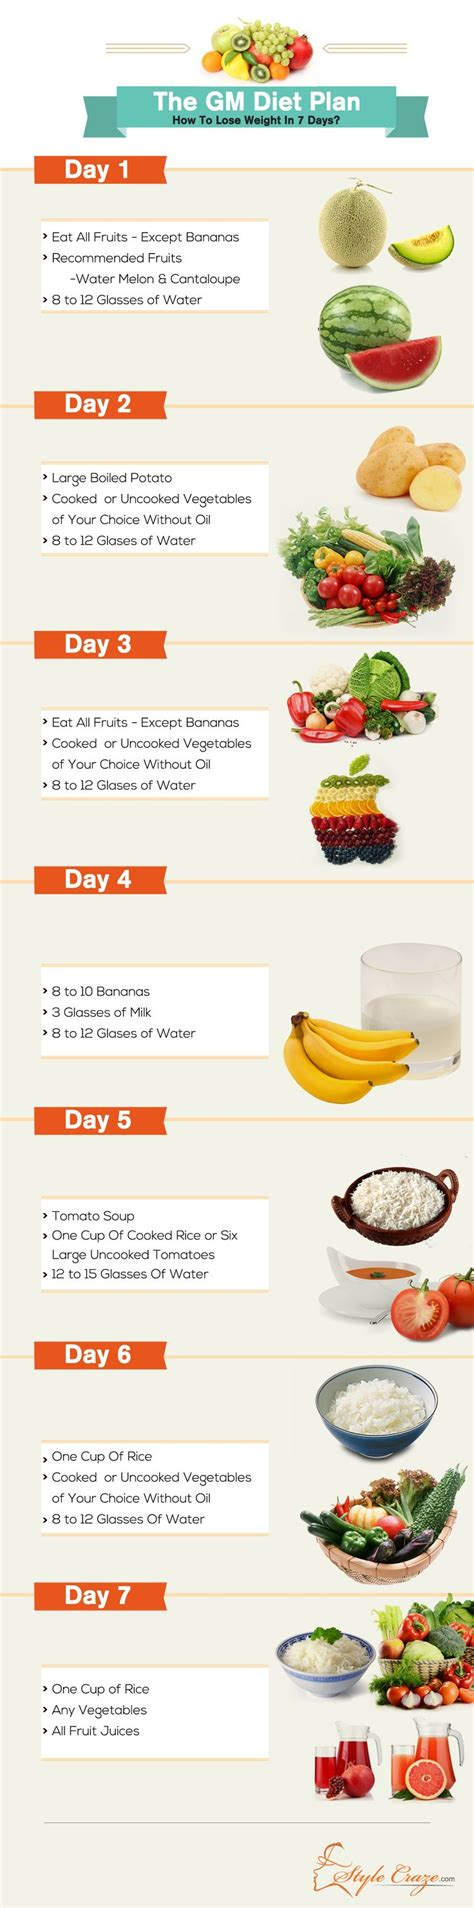 1 Day Fruit Detox Diet Plan by The Gm Diet Plan How To Lose Weight In Just 7 Days